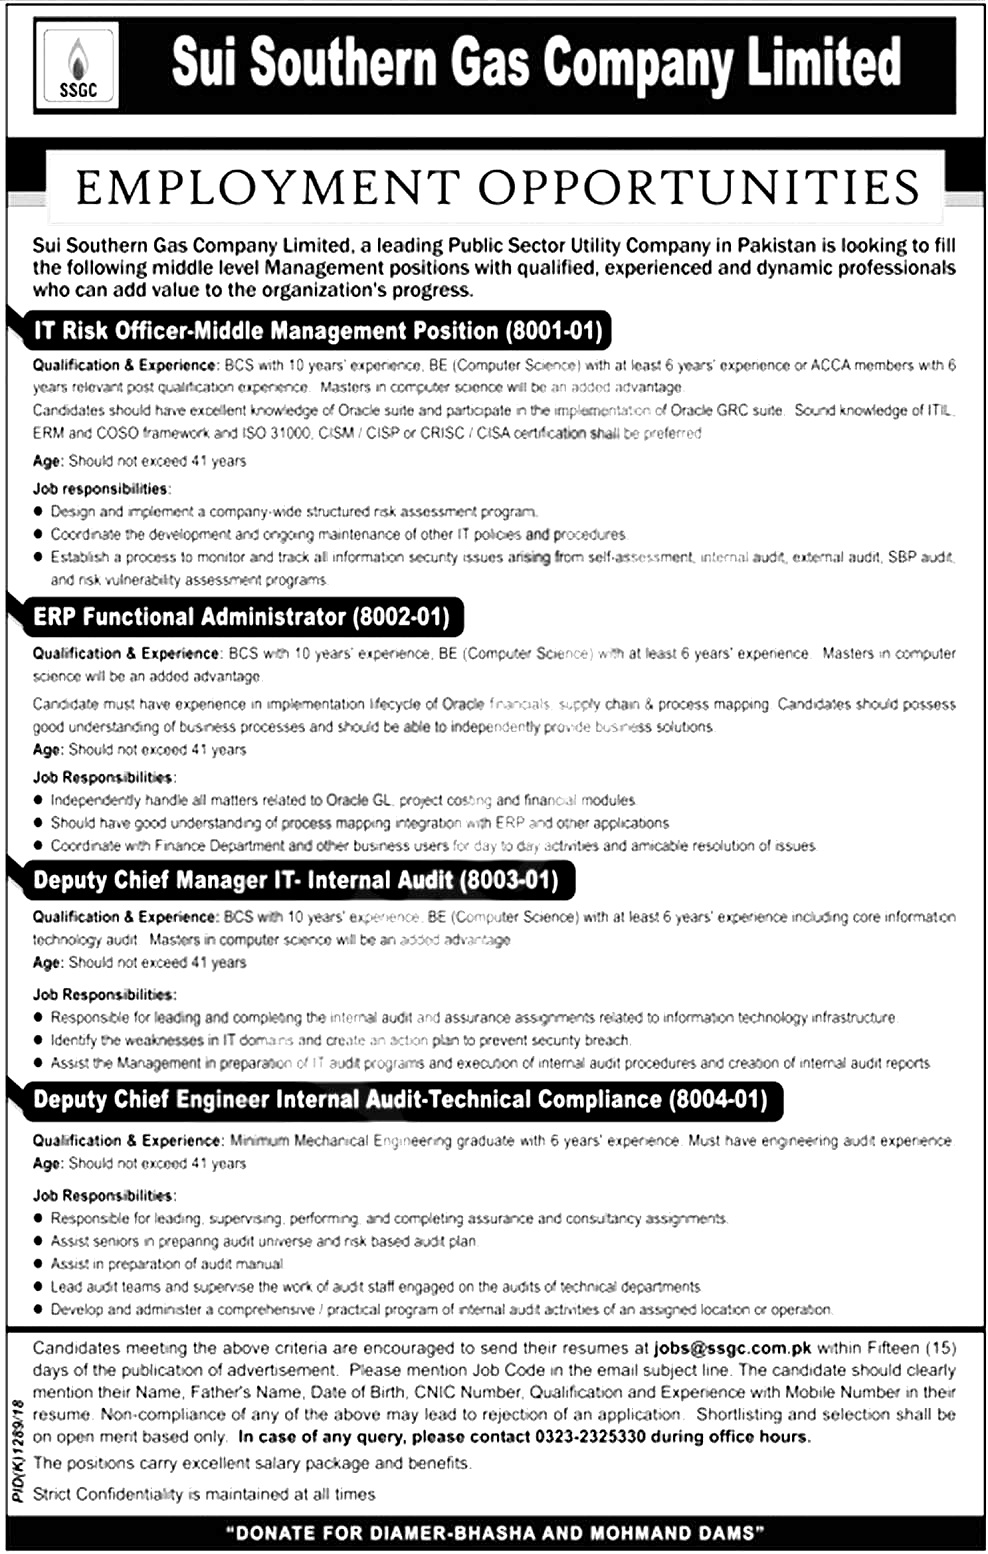 SSGC Sui Southern Gas Company Jobs 2018 Apply Online